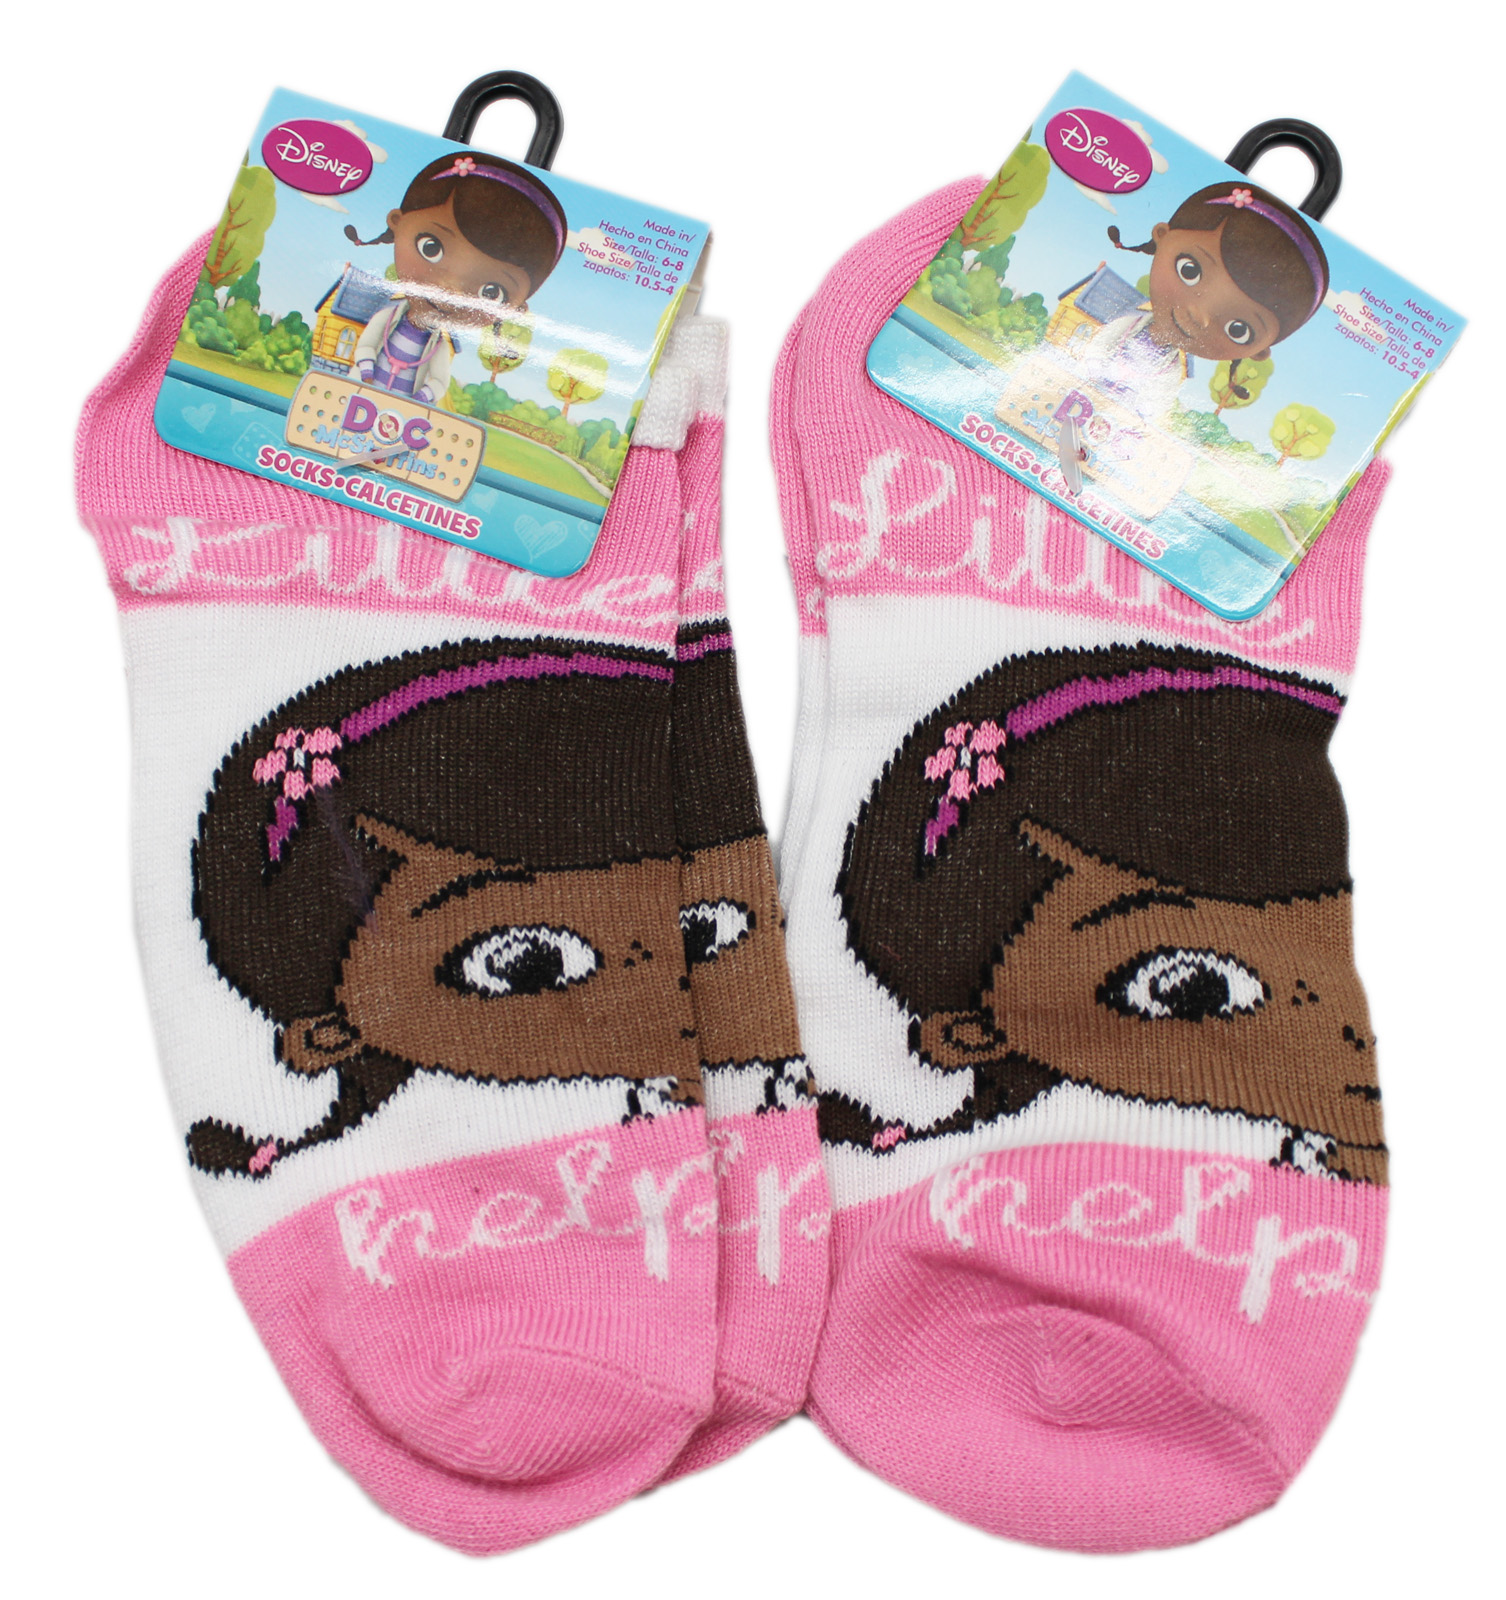 Disney's Doc McStuffins Little Help Pink Kids Socks (2 Pairs, Size 6-8)